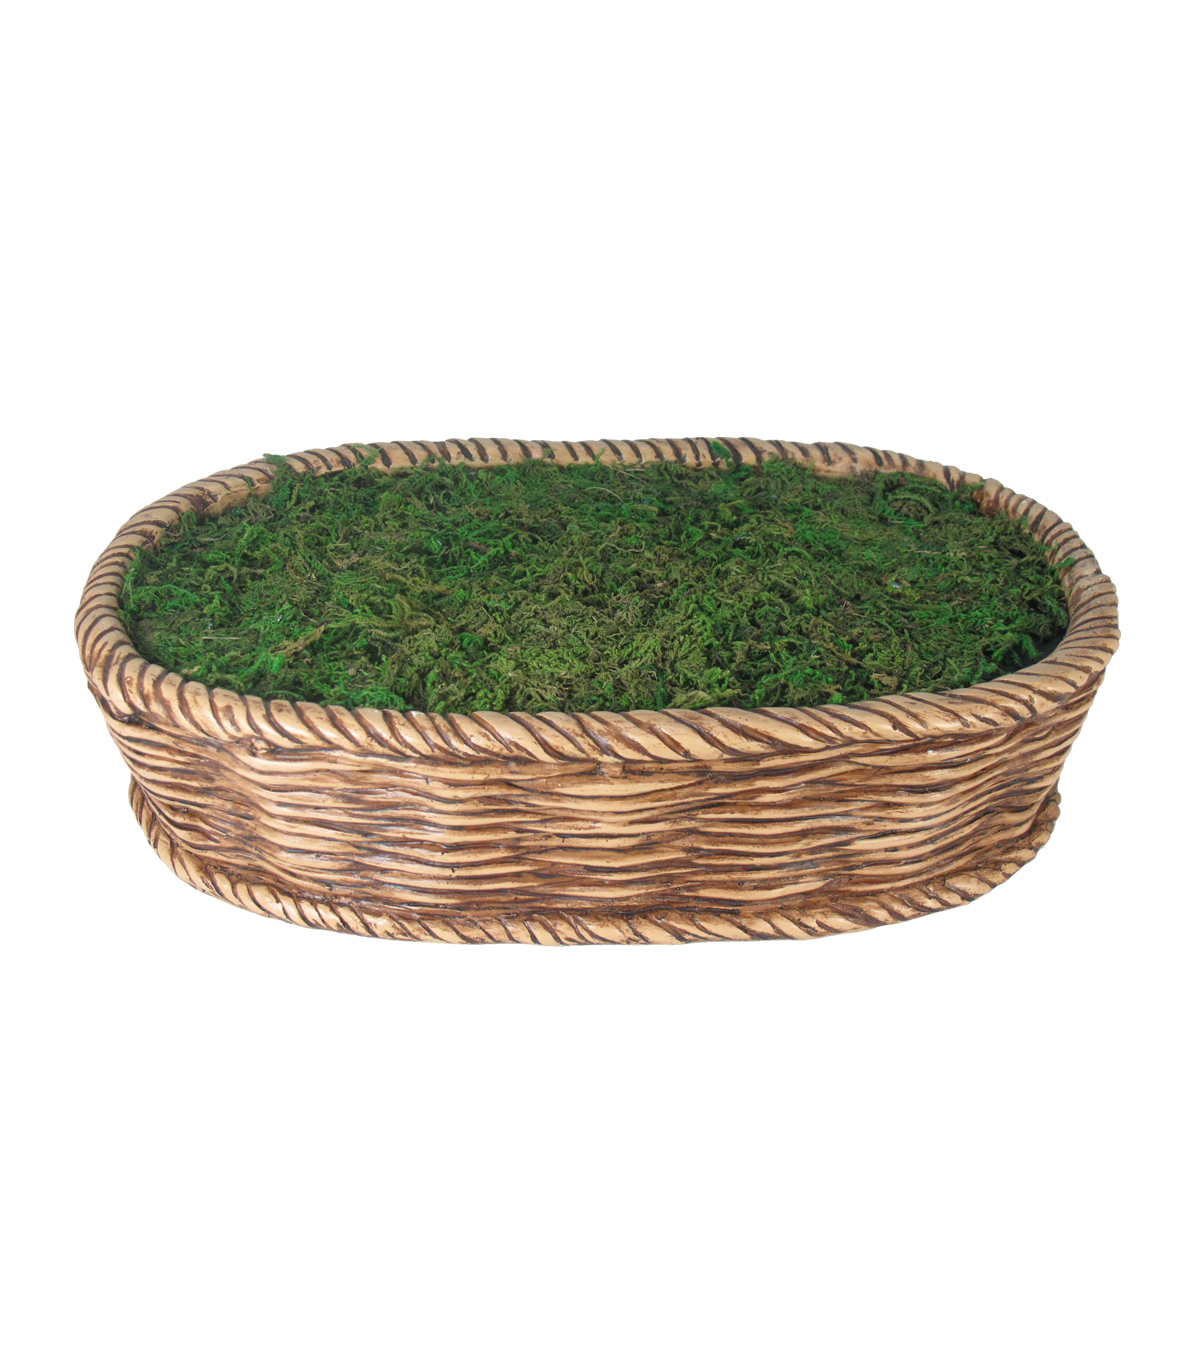 Bloom Room Littles Resin Woven Basket Container